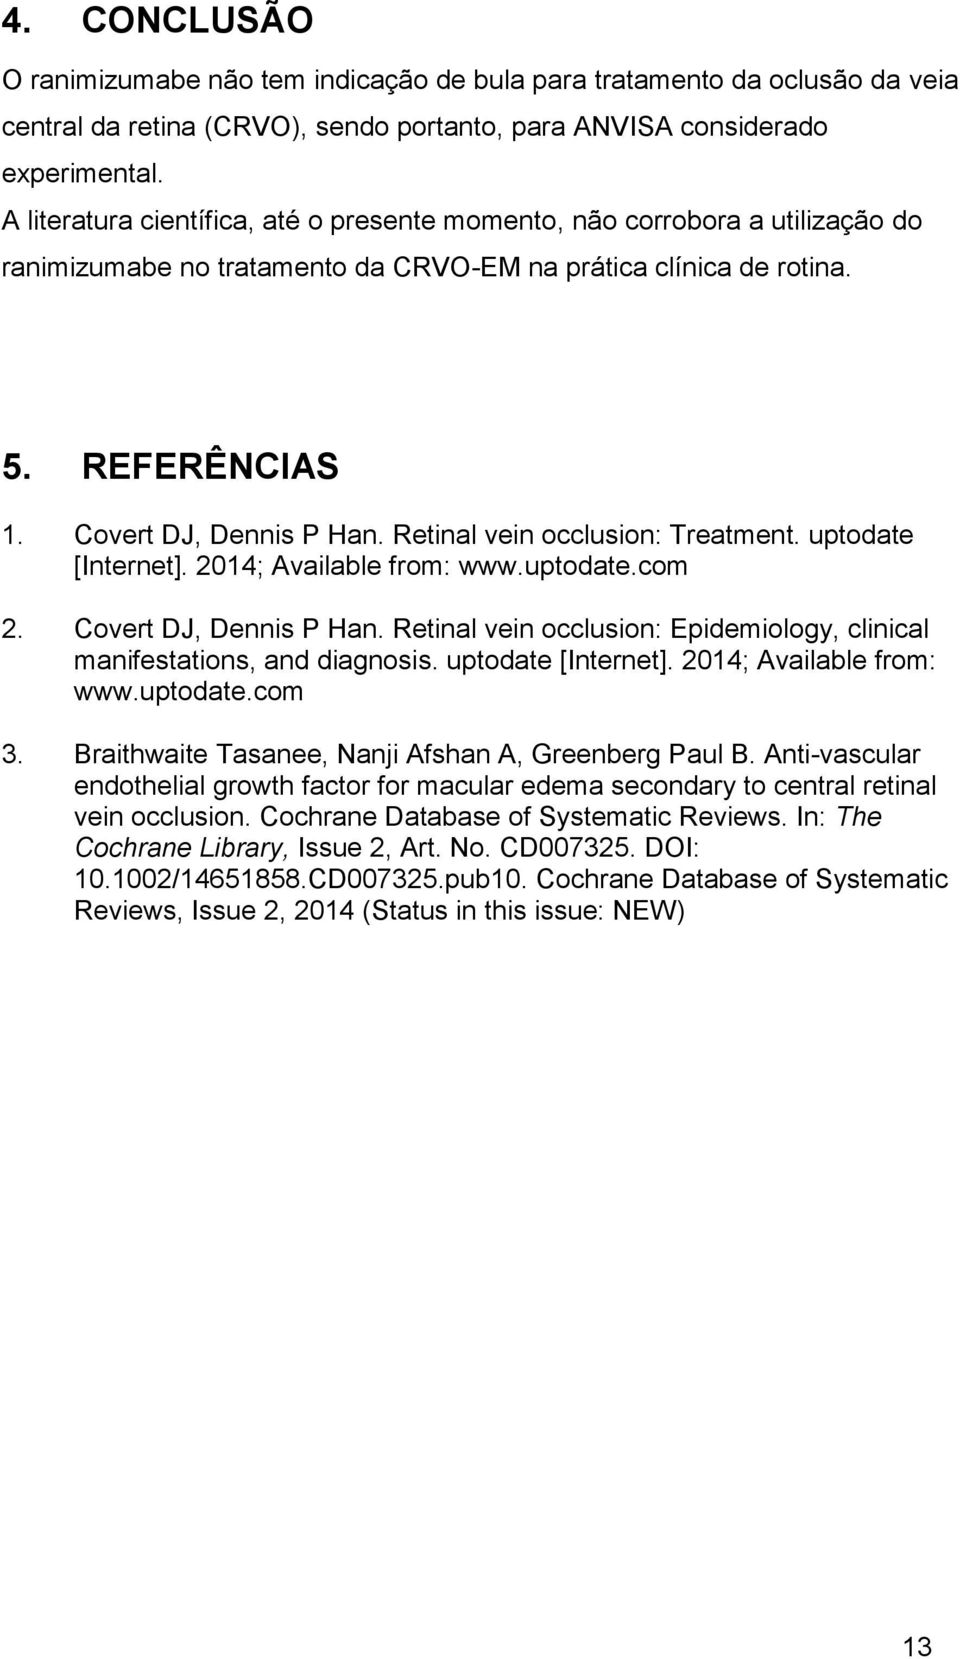 Retinal vein occlusion: Treatment. uptodate [Internet]. 2014; Available from: www.uptodate.com 2. Covert DJ, Dennis P Han. Retinal vein occlusion: Epidemiology, clinical manifestations, and diagnosis.